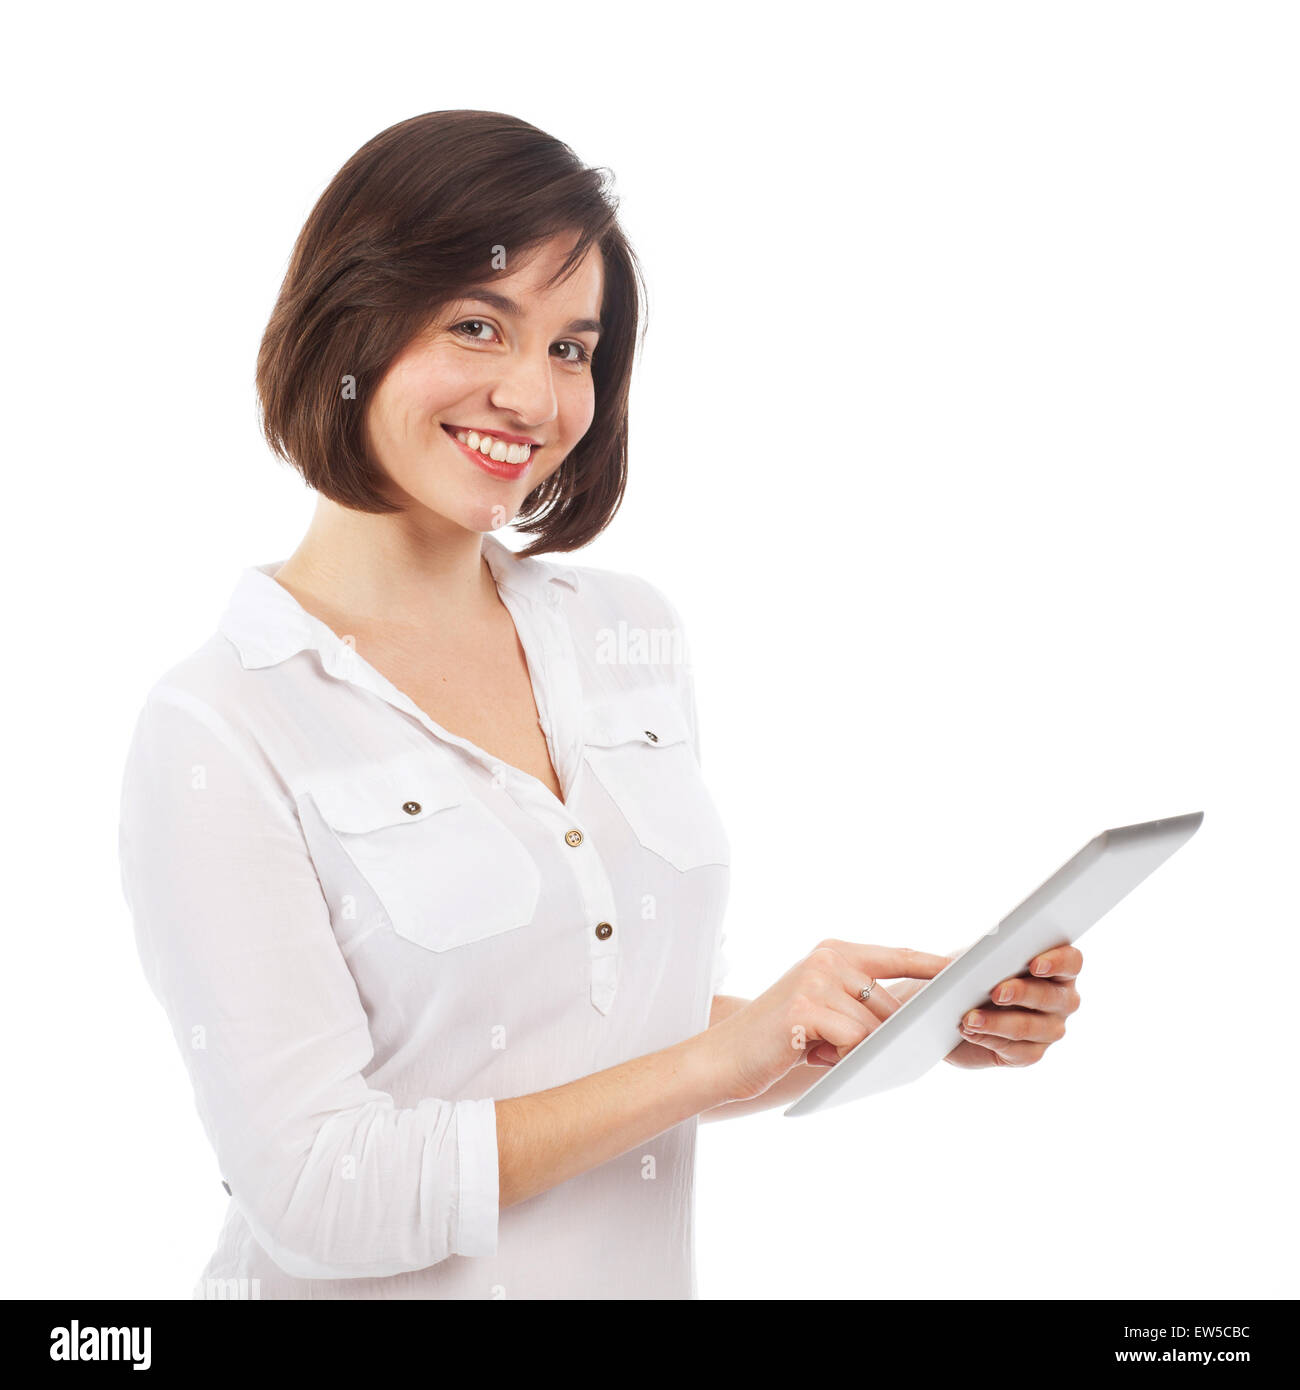 Young smiling woman using a touchpad, isolated on white - Stock Image